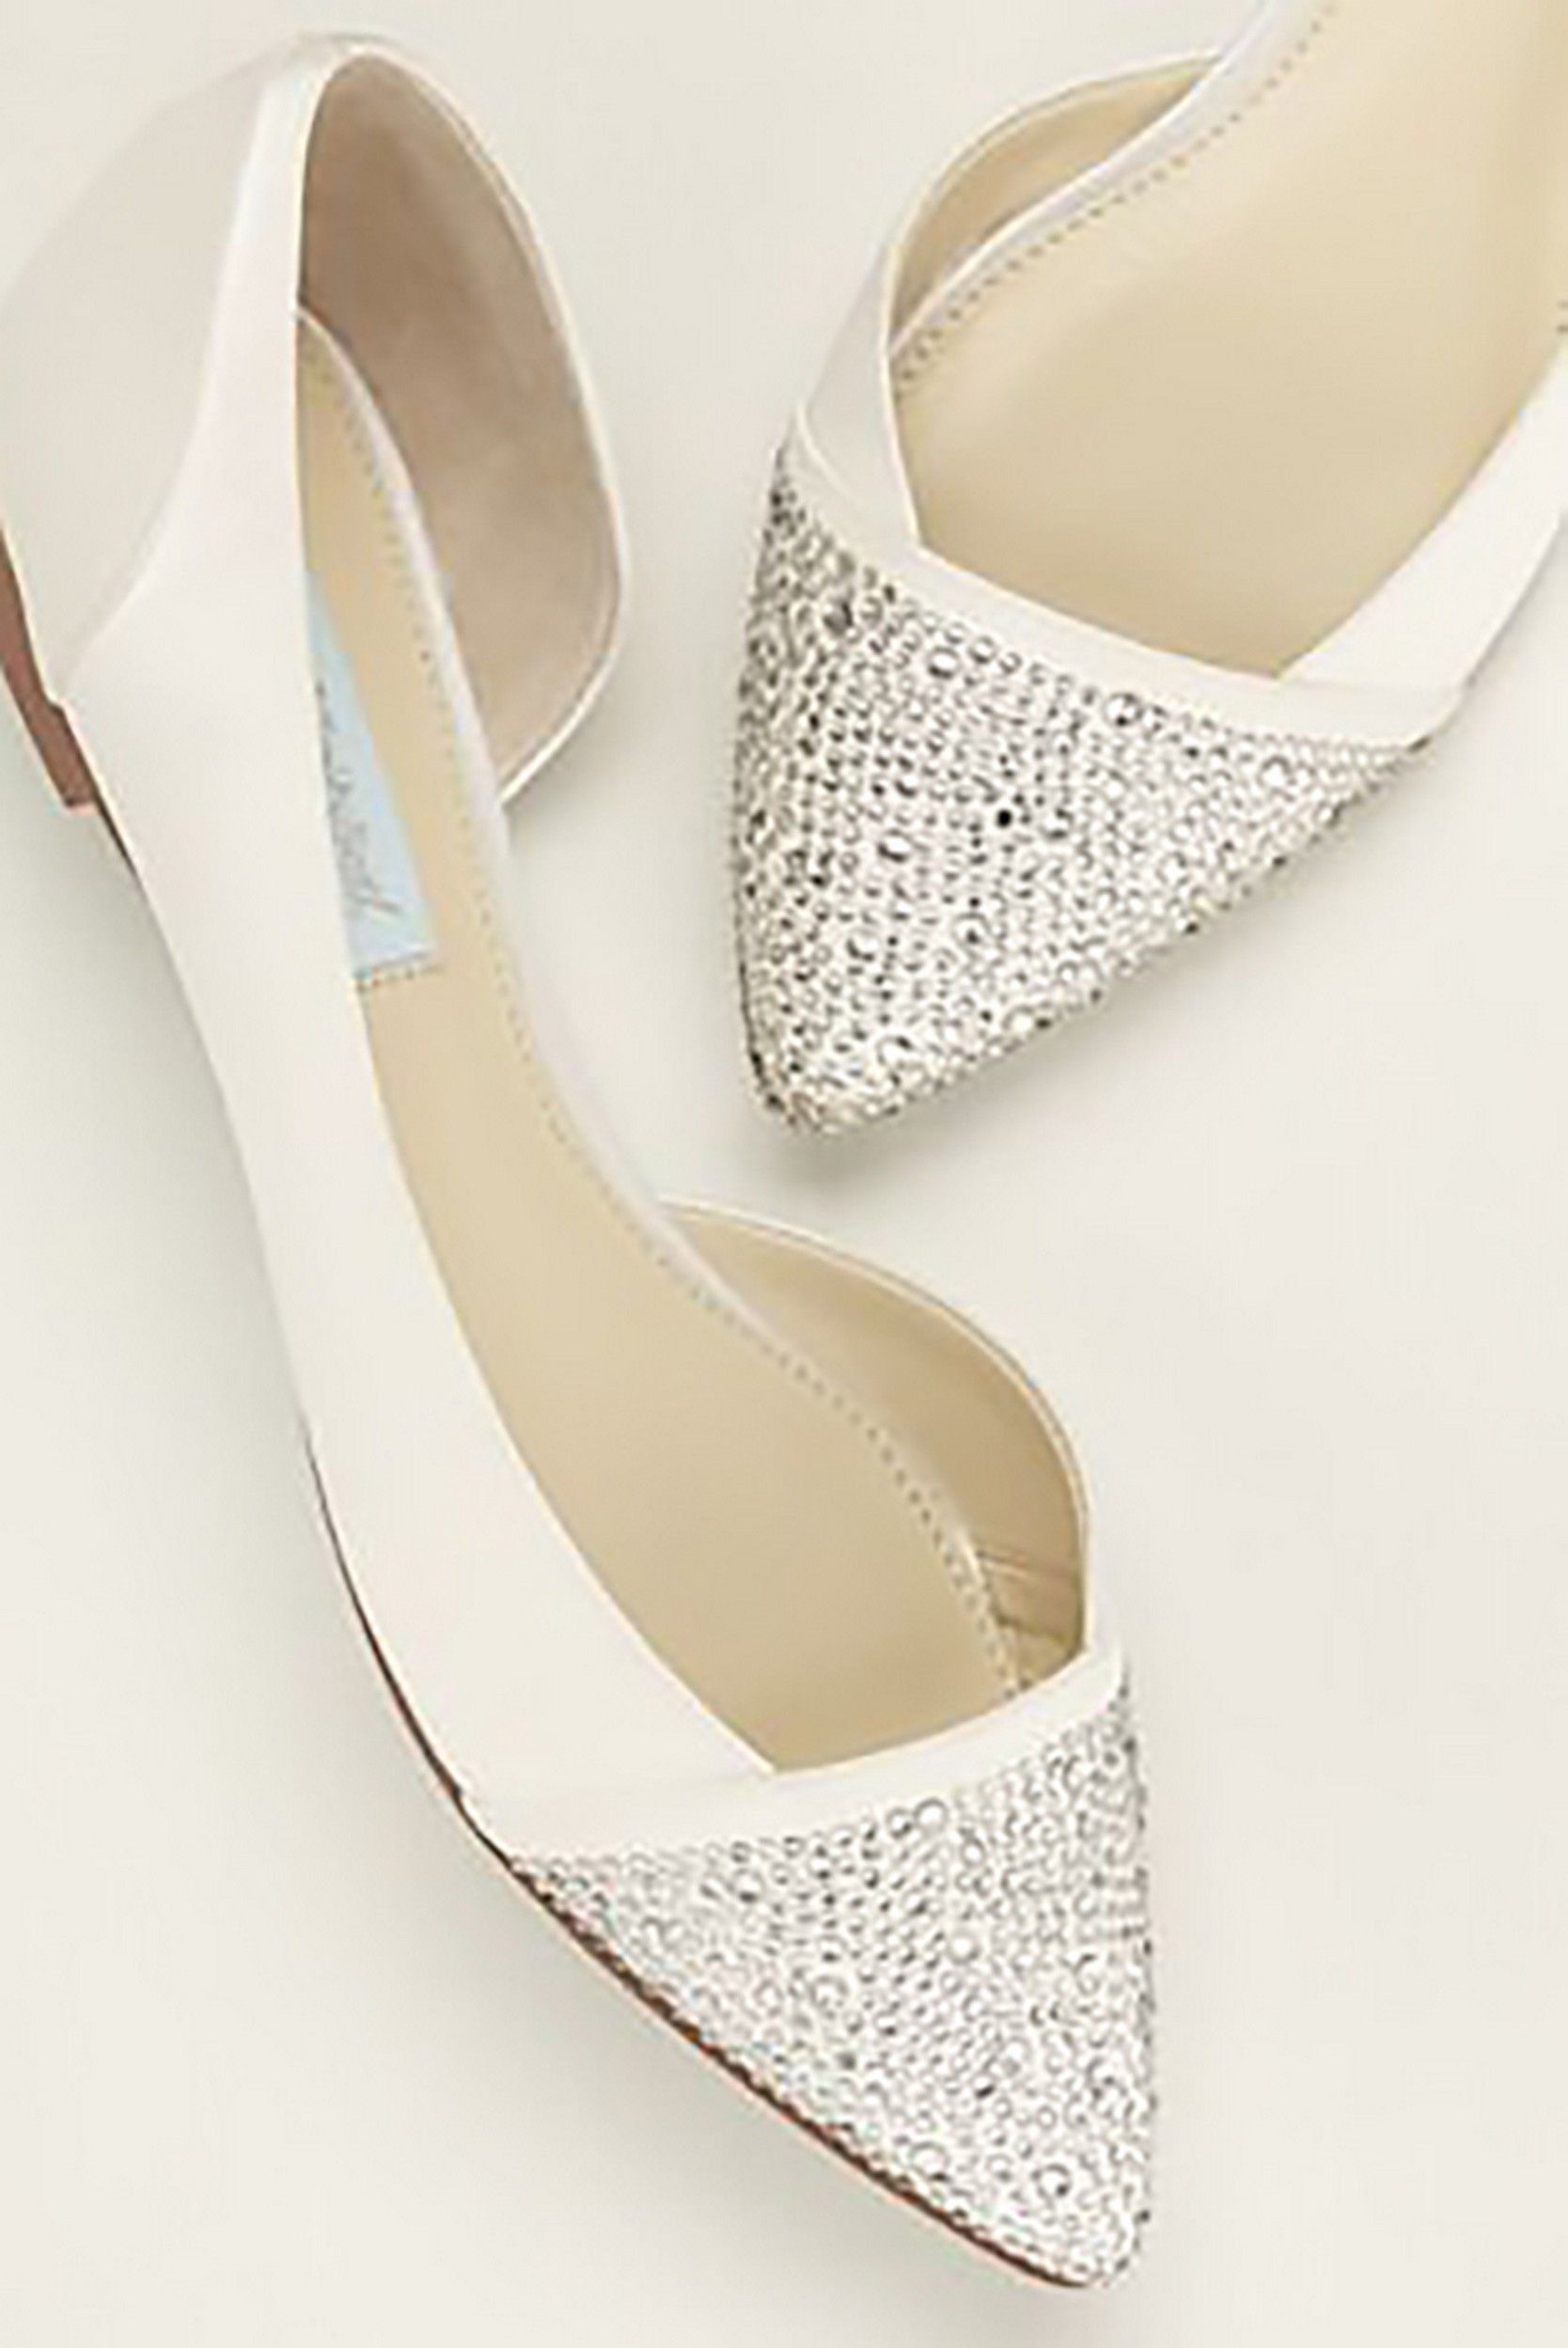 graphics emmy comforter of comfortable unique stylish luxury wedding most bridal line shoes concept buy the gold london ella